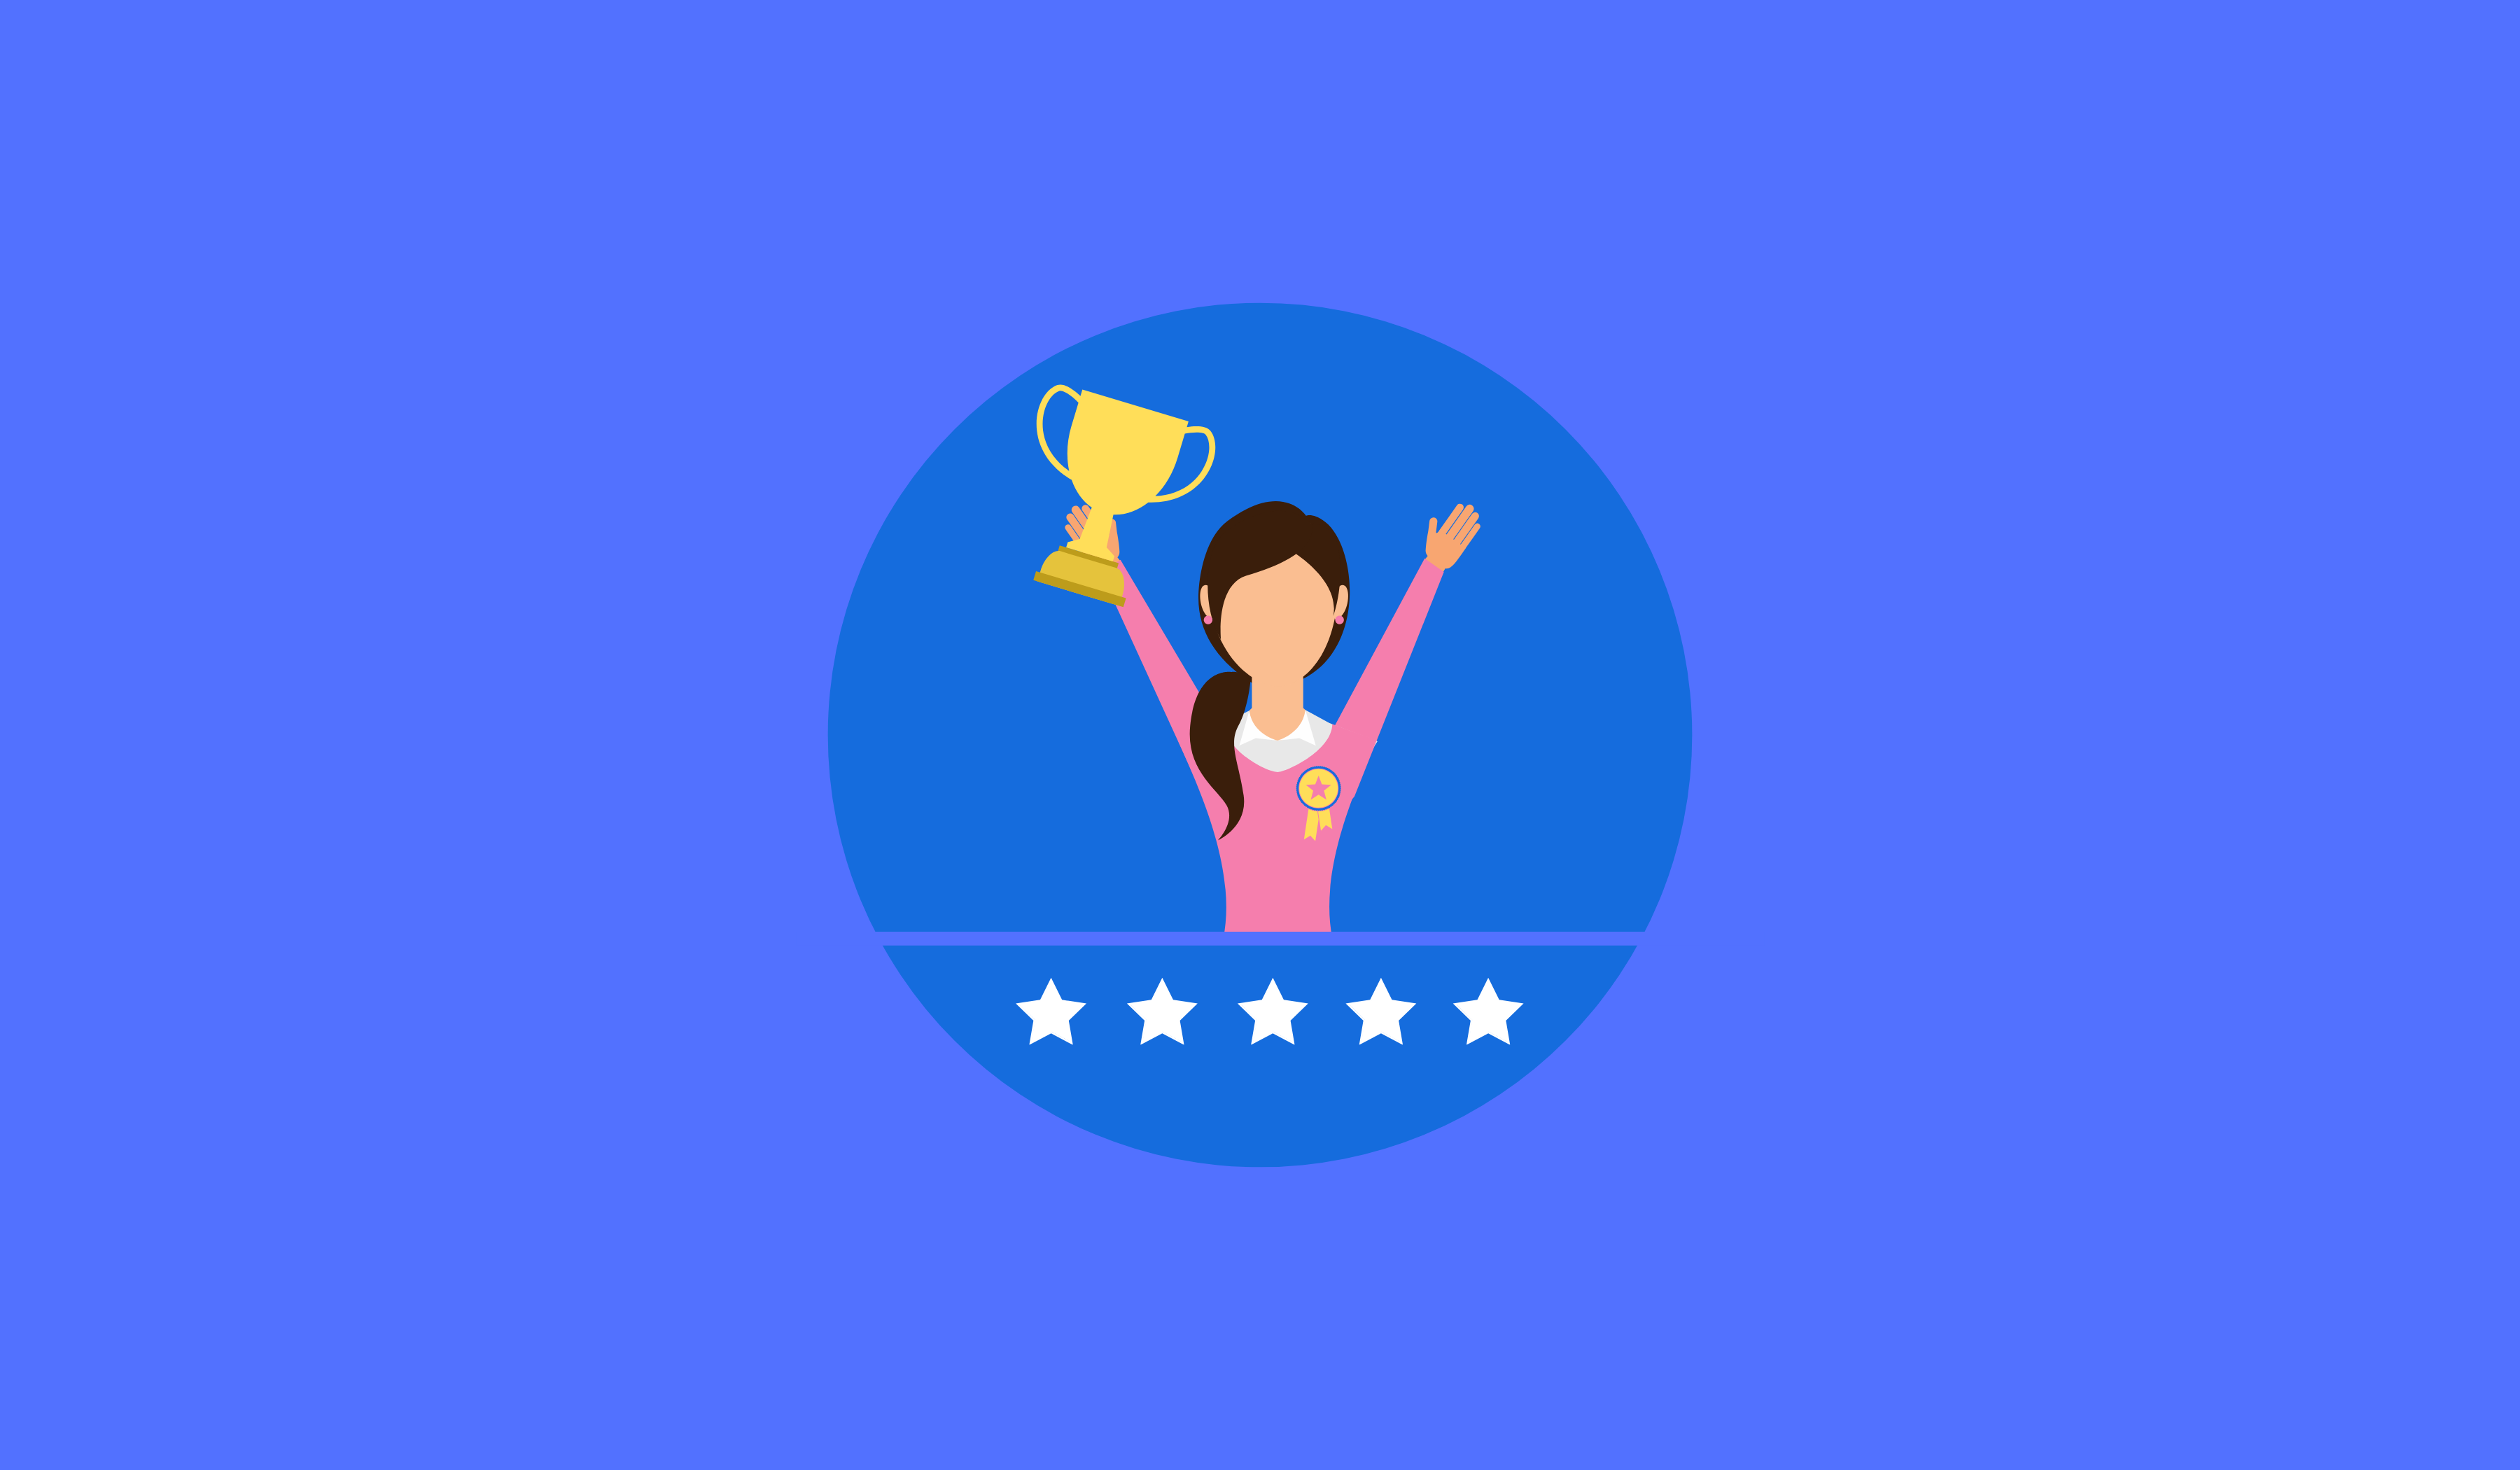 4 Unique Ways to Reward Employees and Give Your Company Culture a Boost